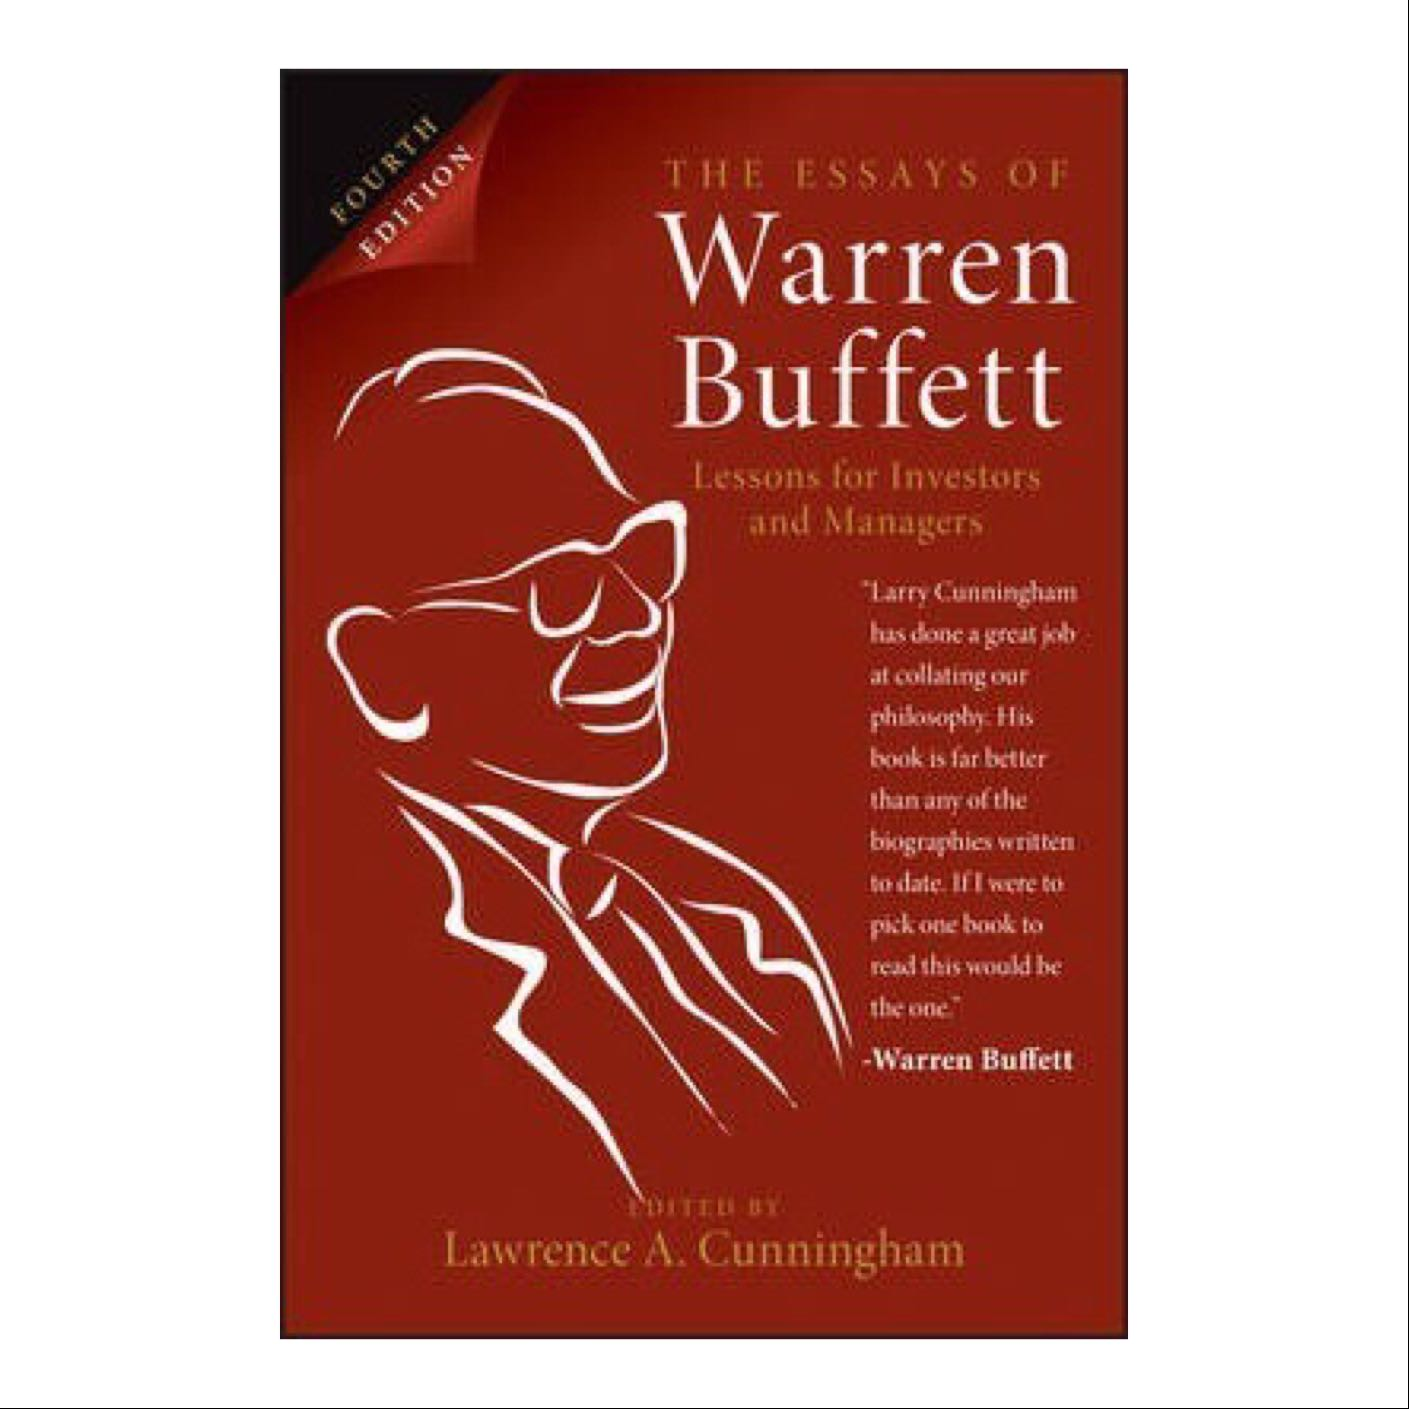 003 The Essays Of Warren Buffett Lessons For Investors And Managers 1524100501 7d4f23ba Essay Striking 4th Edition Free Pdf Full